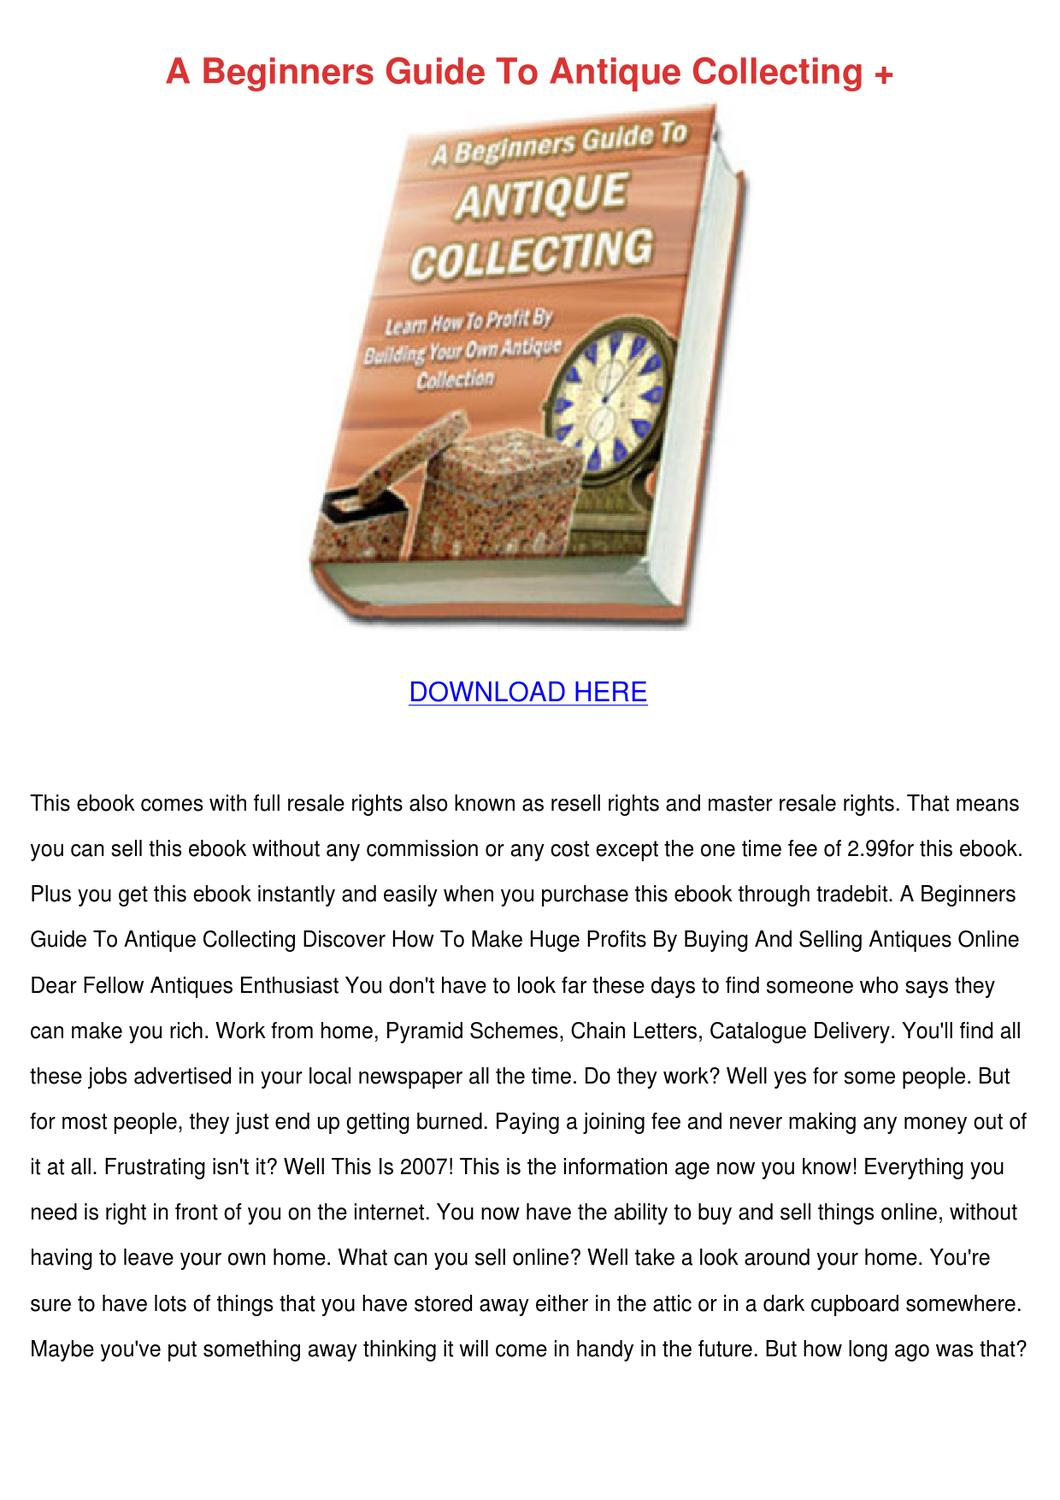 A Beginners Guide To Antique Collecting by Vashti Canel - issuu